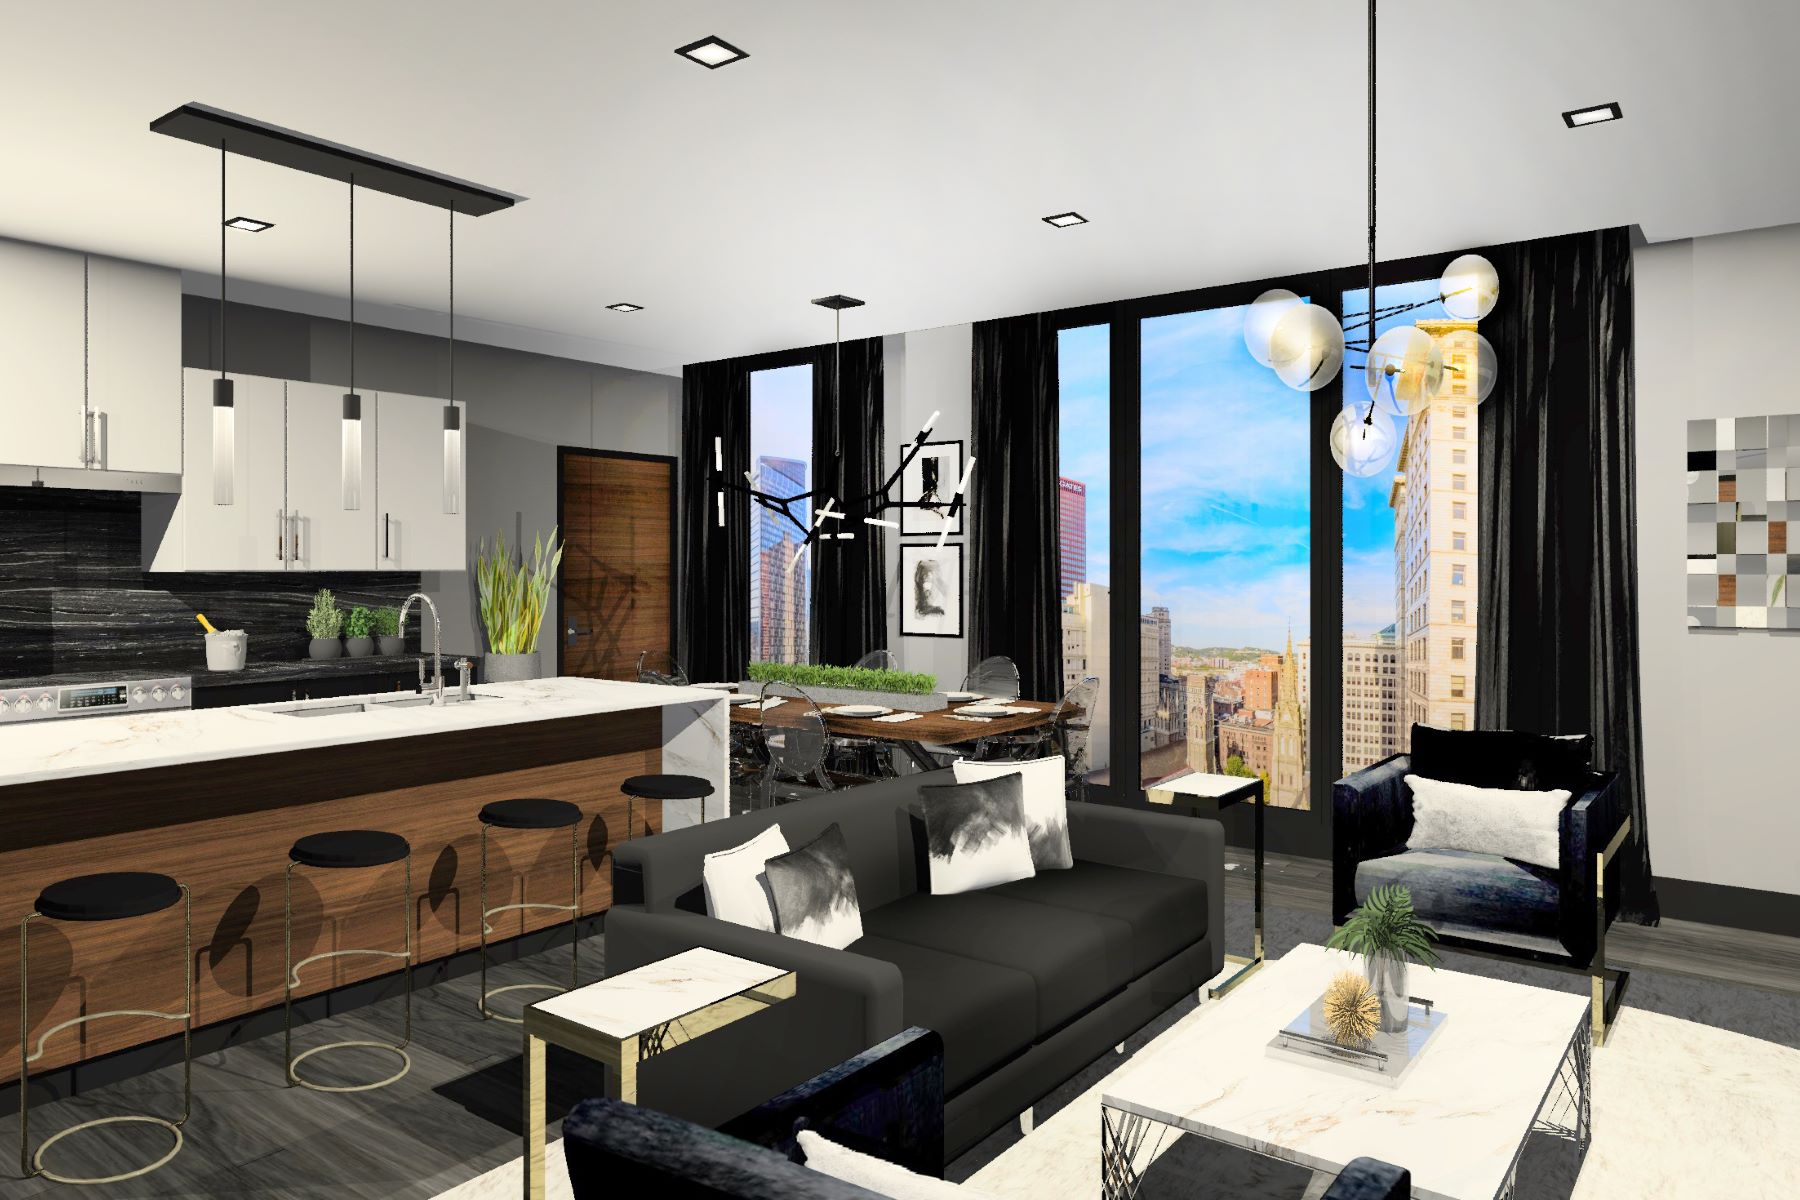 Condominiums for Sale at One-of-a-Kind Sky Home at Lumière 350 Oliver Avenue, Residence #802 350 Oliver Ave 802, Pittsburgh, Pennsylvania 15222 United States